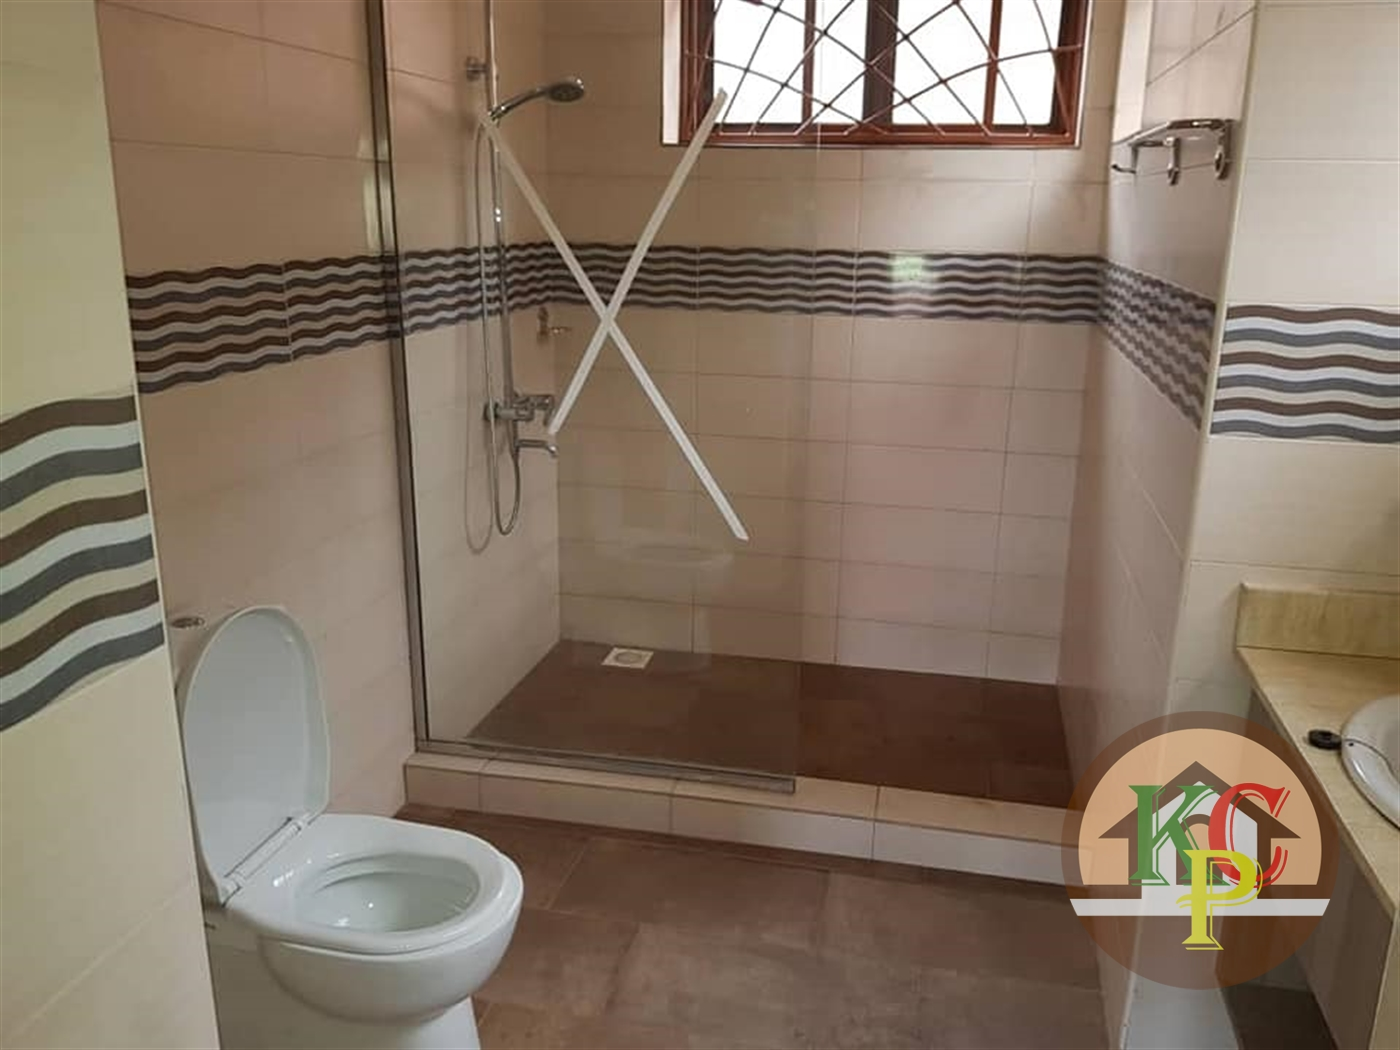 Apartment for rent in Lubowa Kampala